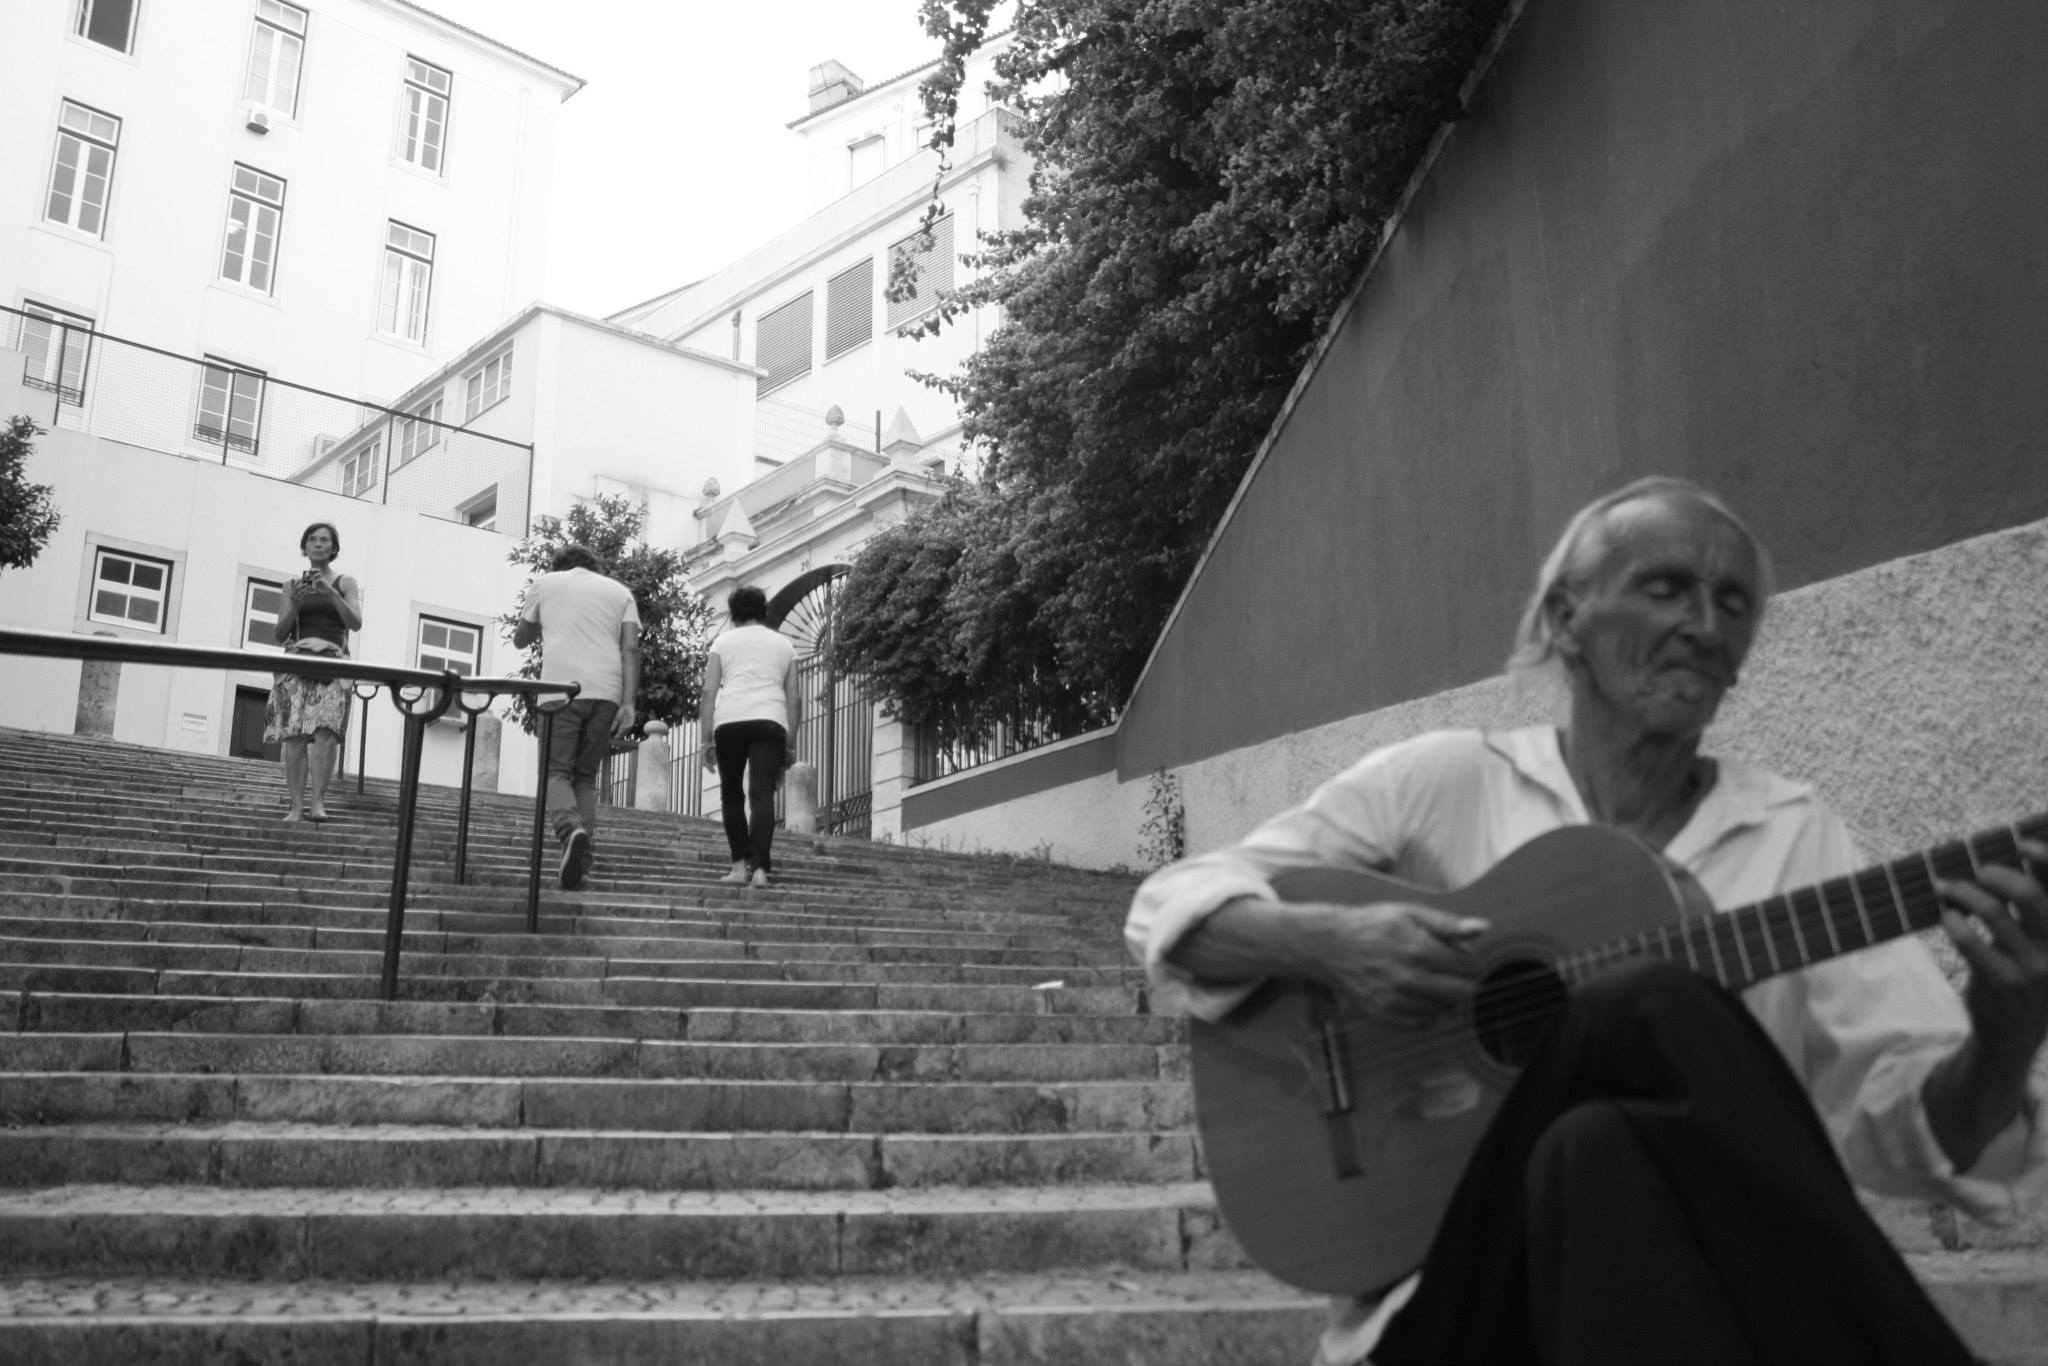 A man playing on his well-worn traveler classical guitar